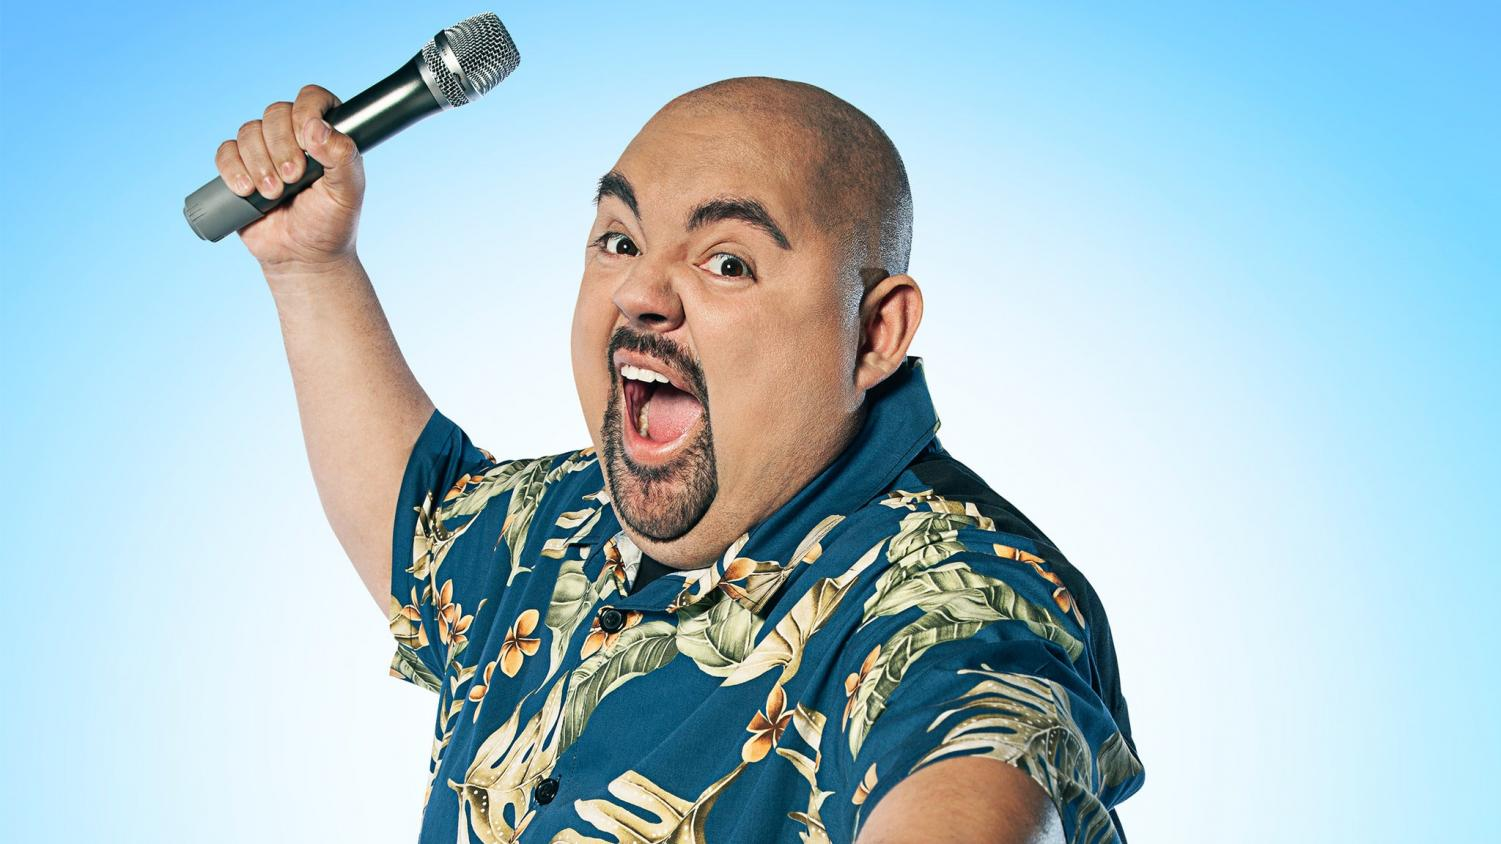 Known for his Hawaiian shirts and quirky voice impersonations, Gabriel Iglesias is a prominent stand-up comedian. He has multiple comedy specials and lends his voice to many more animated movies.